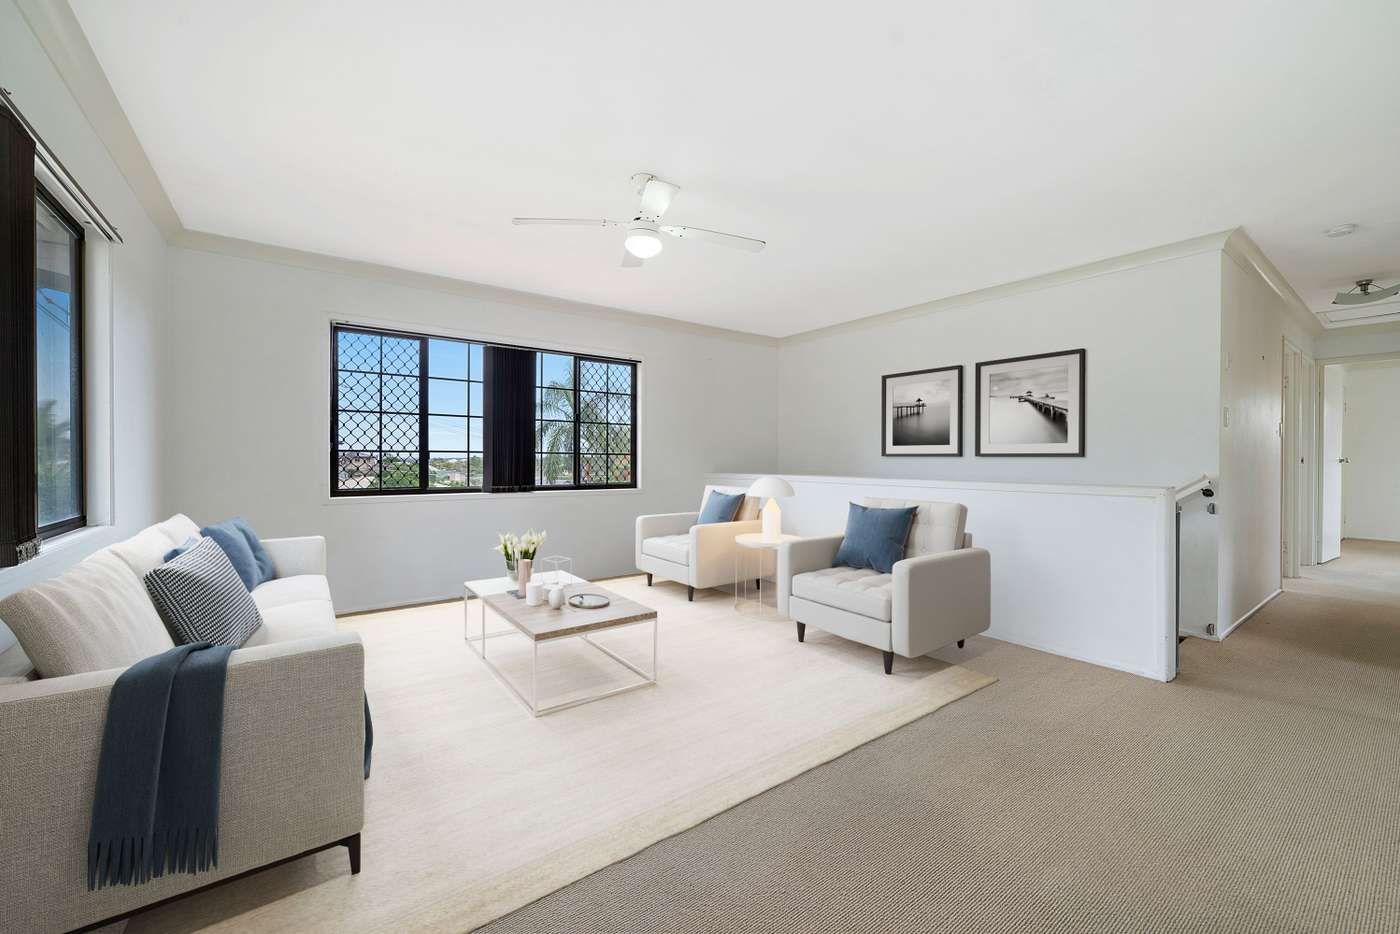 Sixth view of Homely house listing, 16 Melinda Court, Springwood QLD 4127